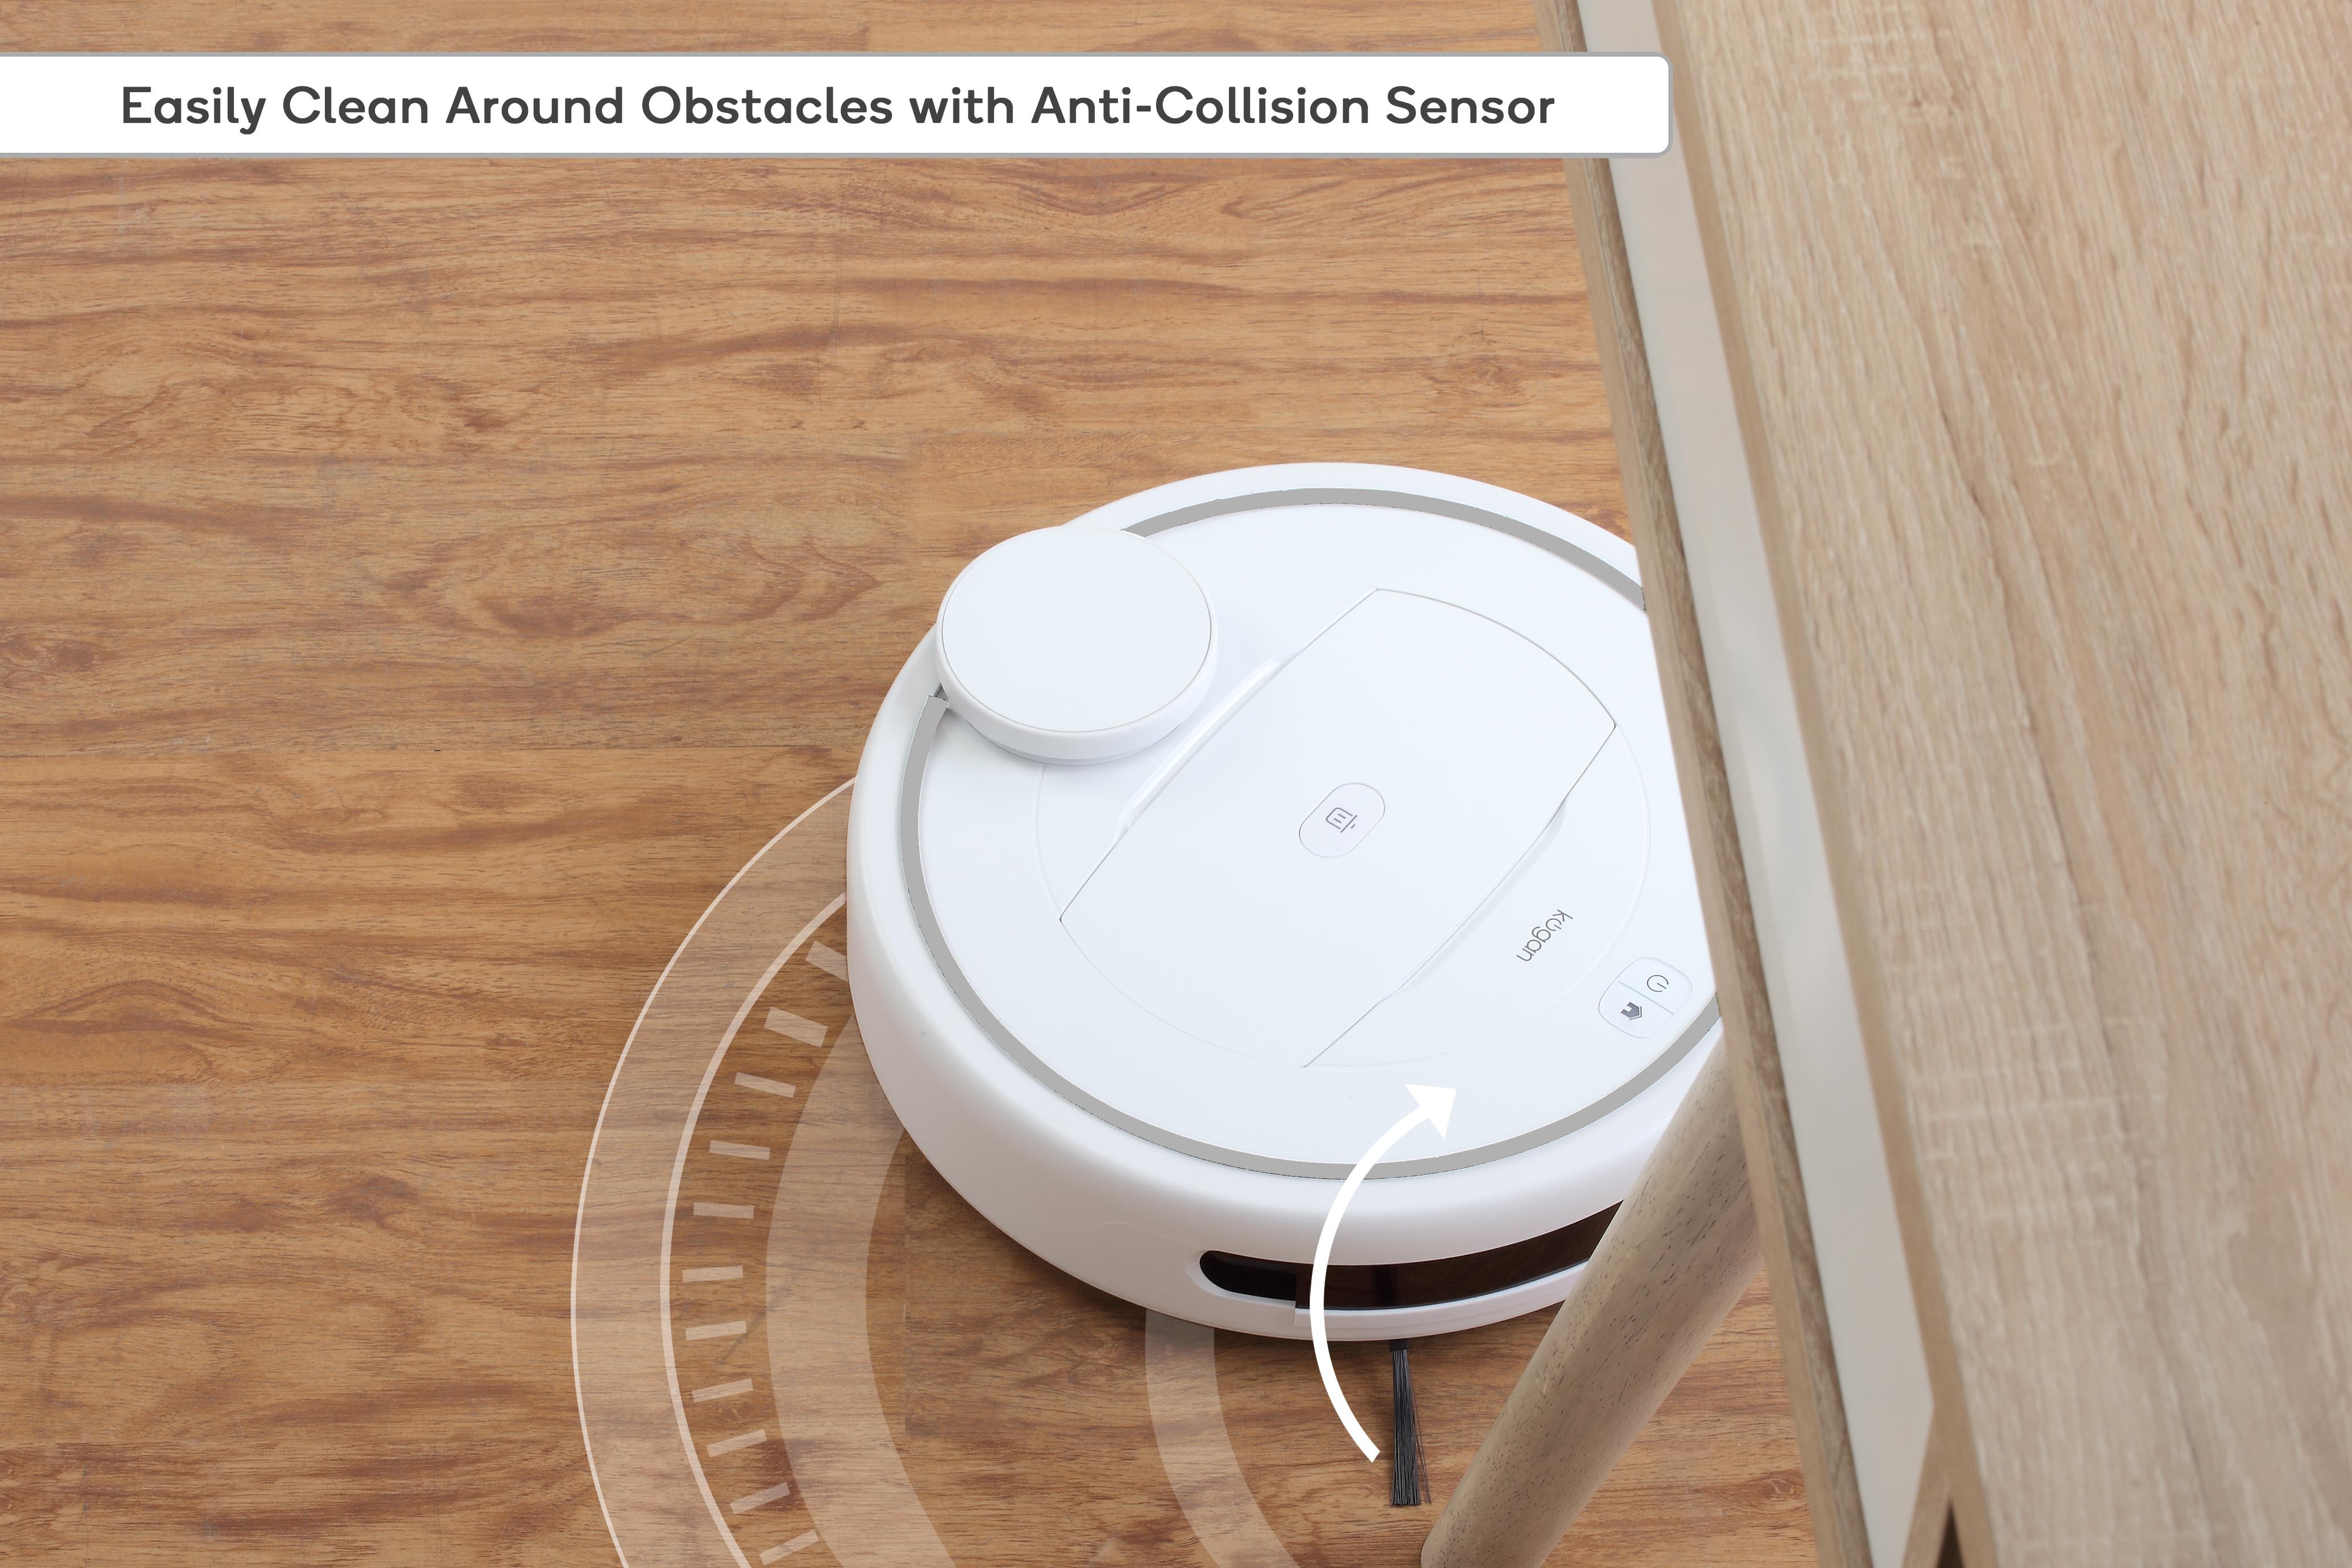 Easily clean around obstacles with anti-collision sensor